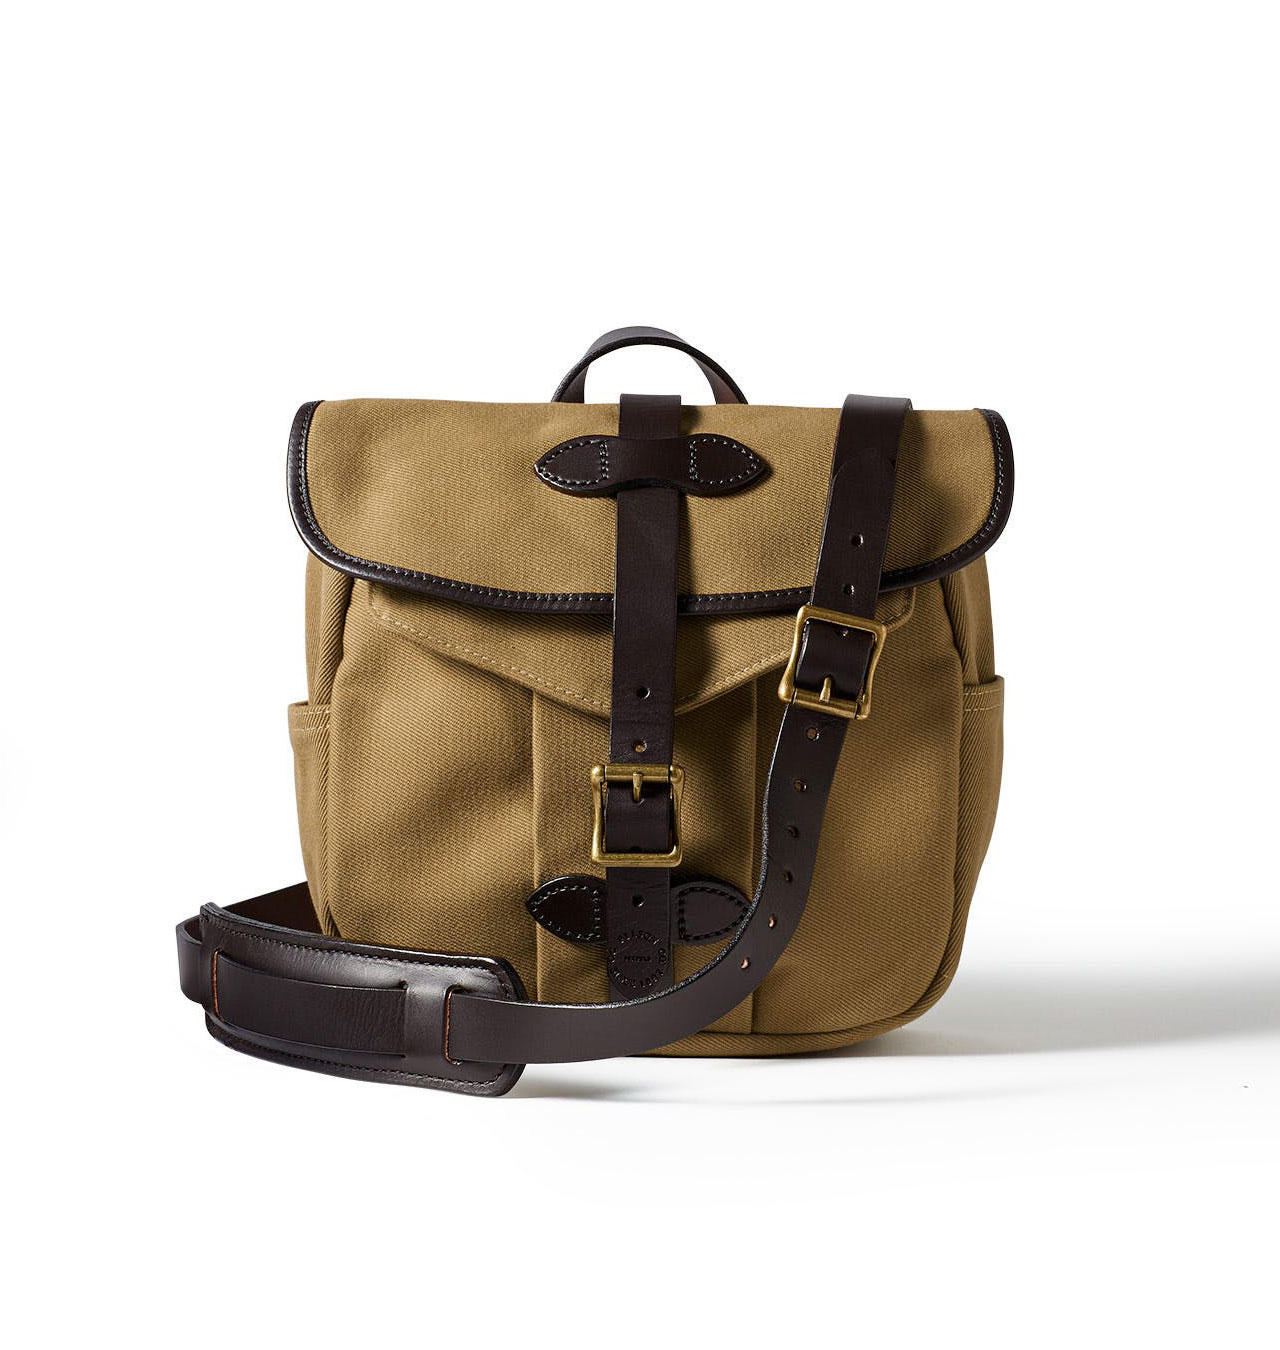 Filson - Field Bag Small - Tan